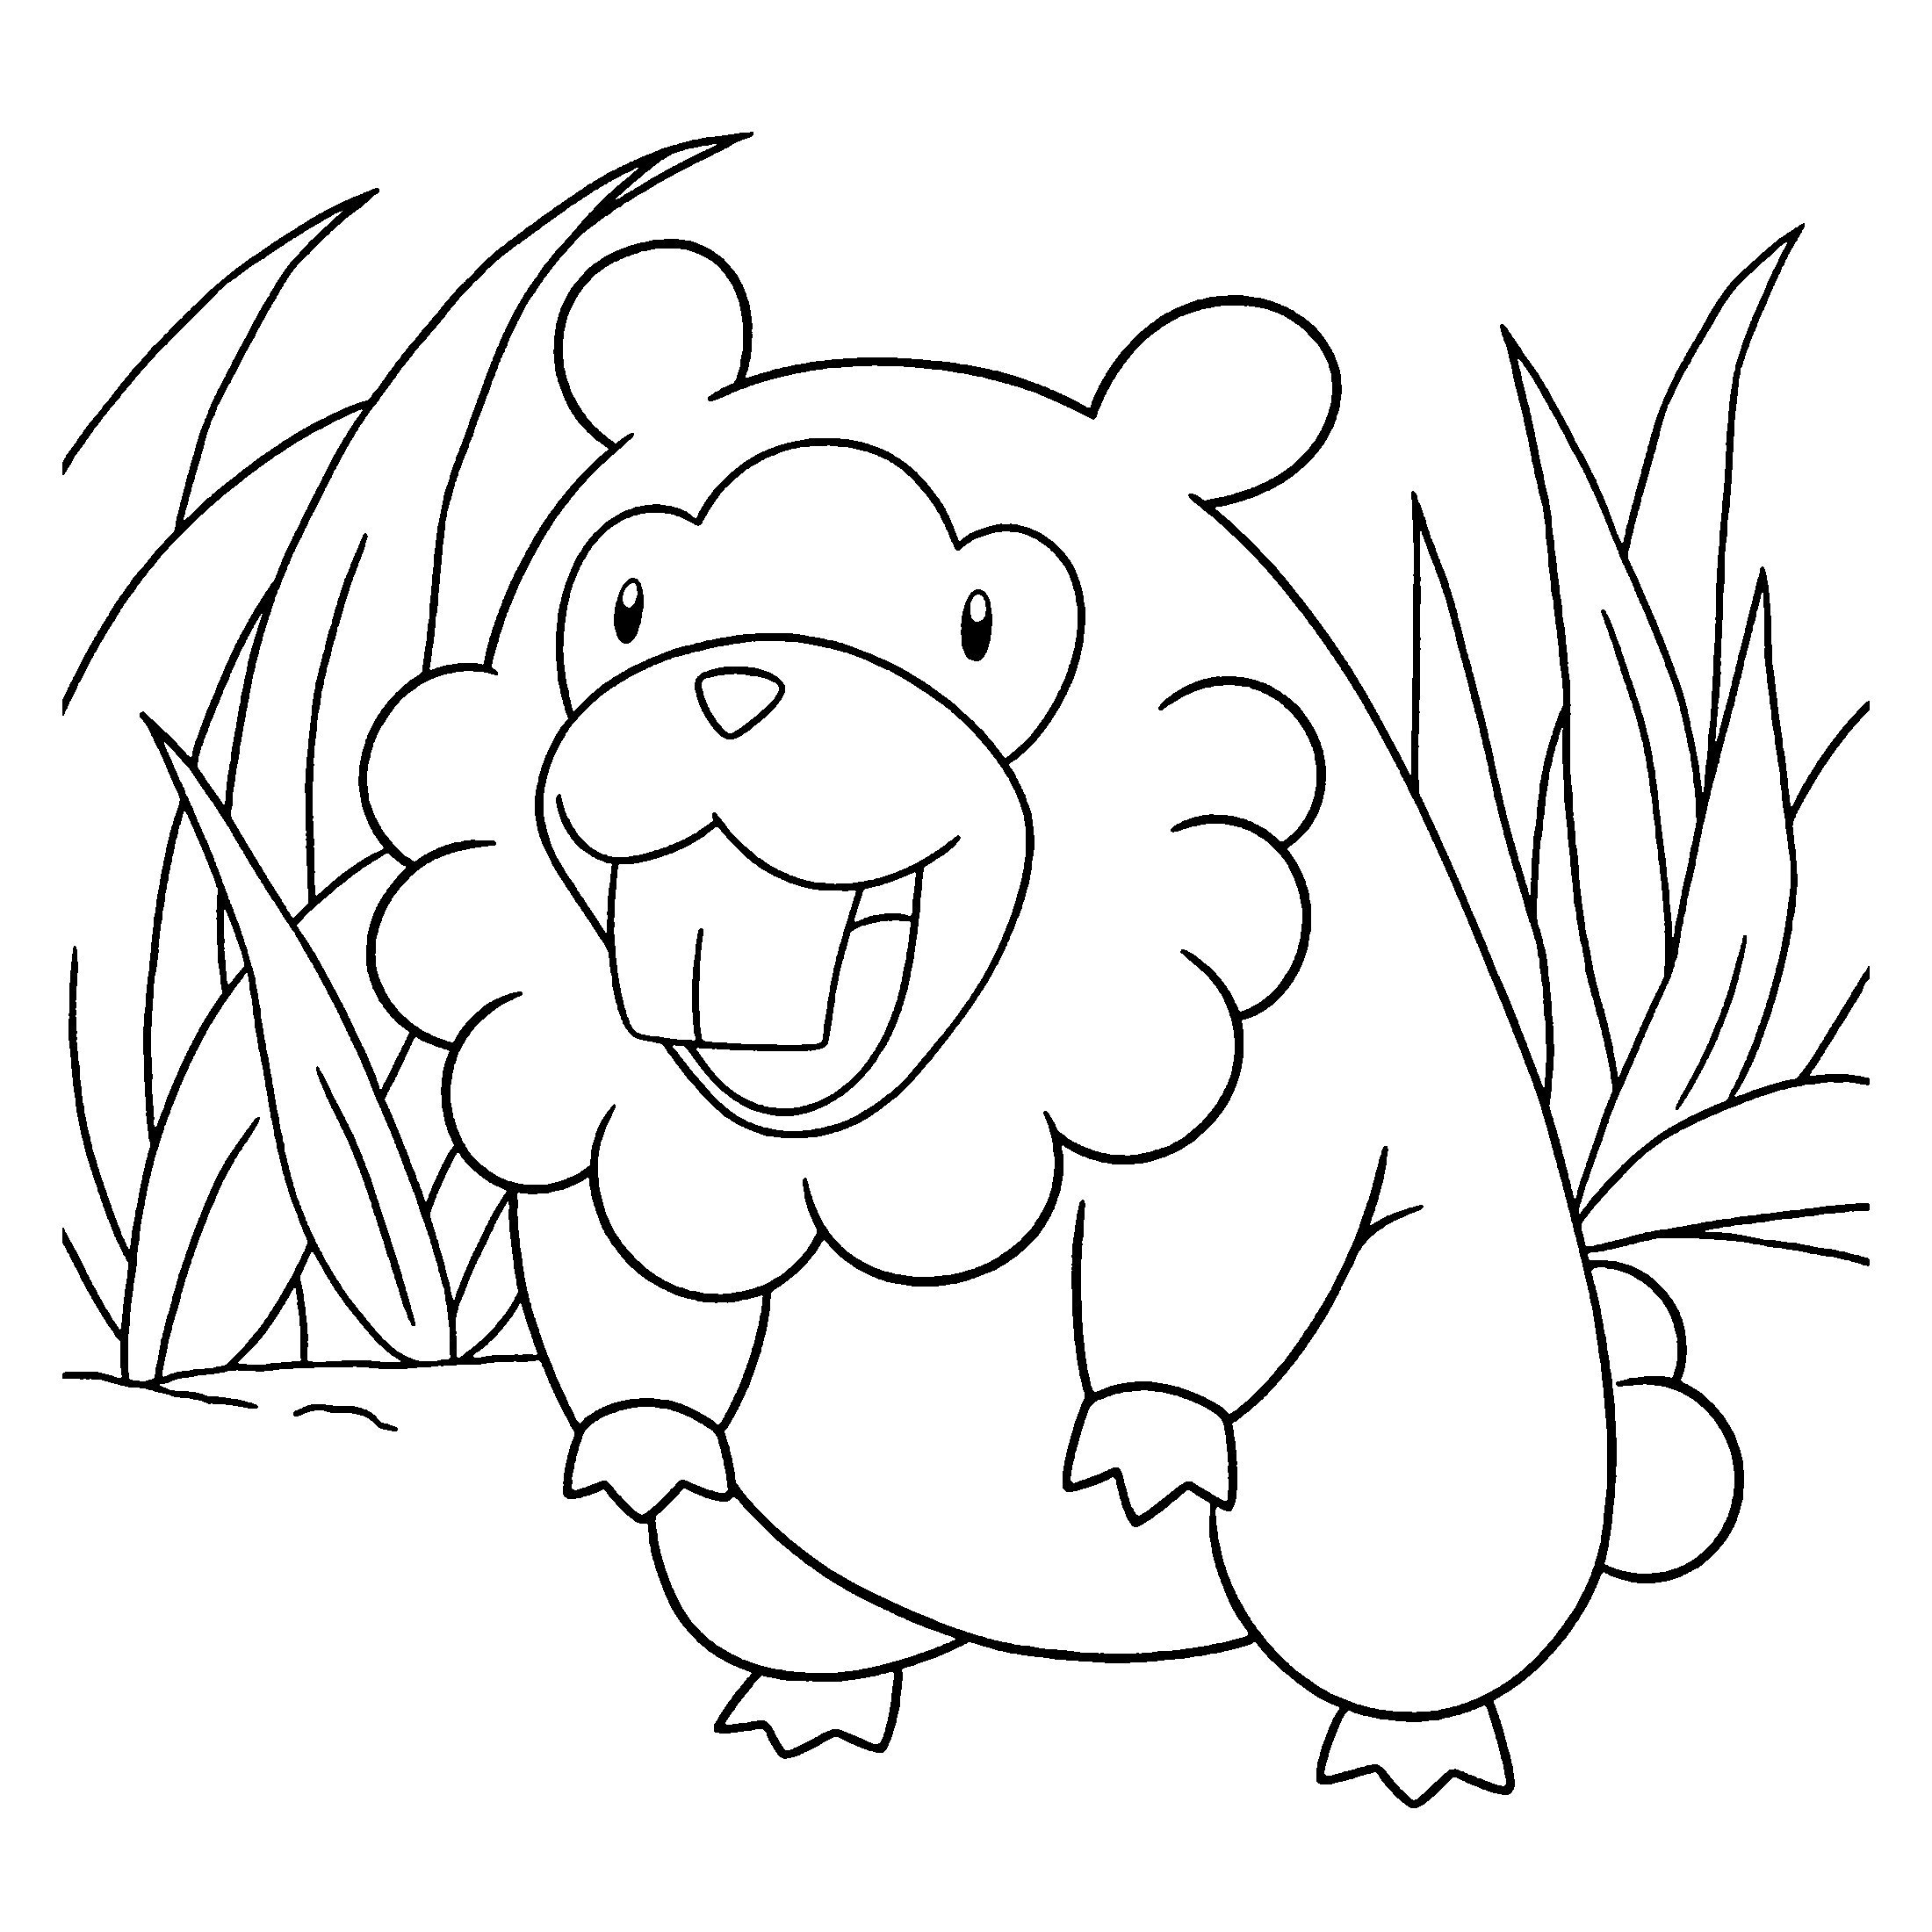 pakemon diamond pearl coloring pages - photo #15